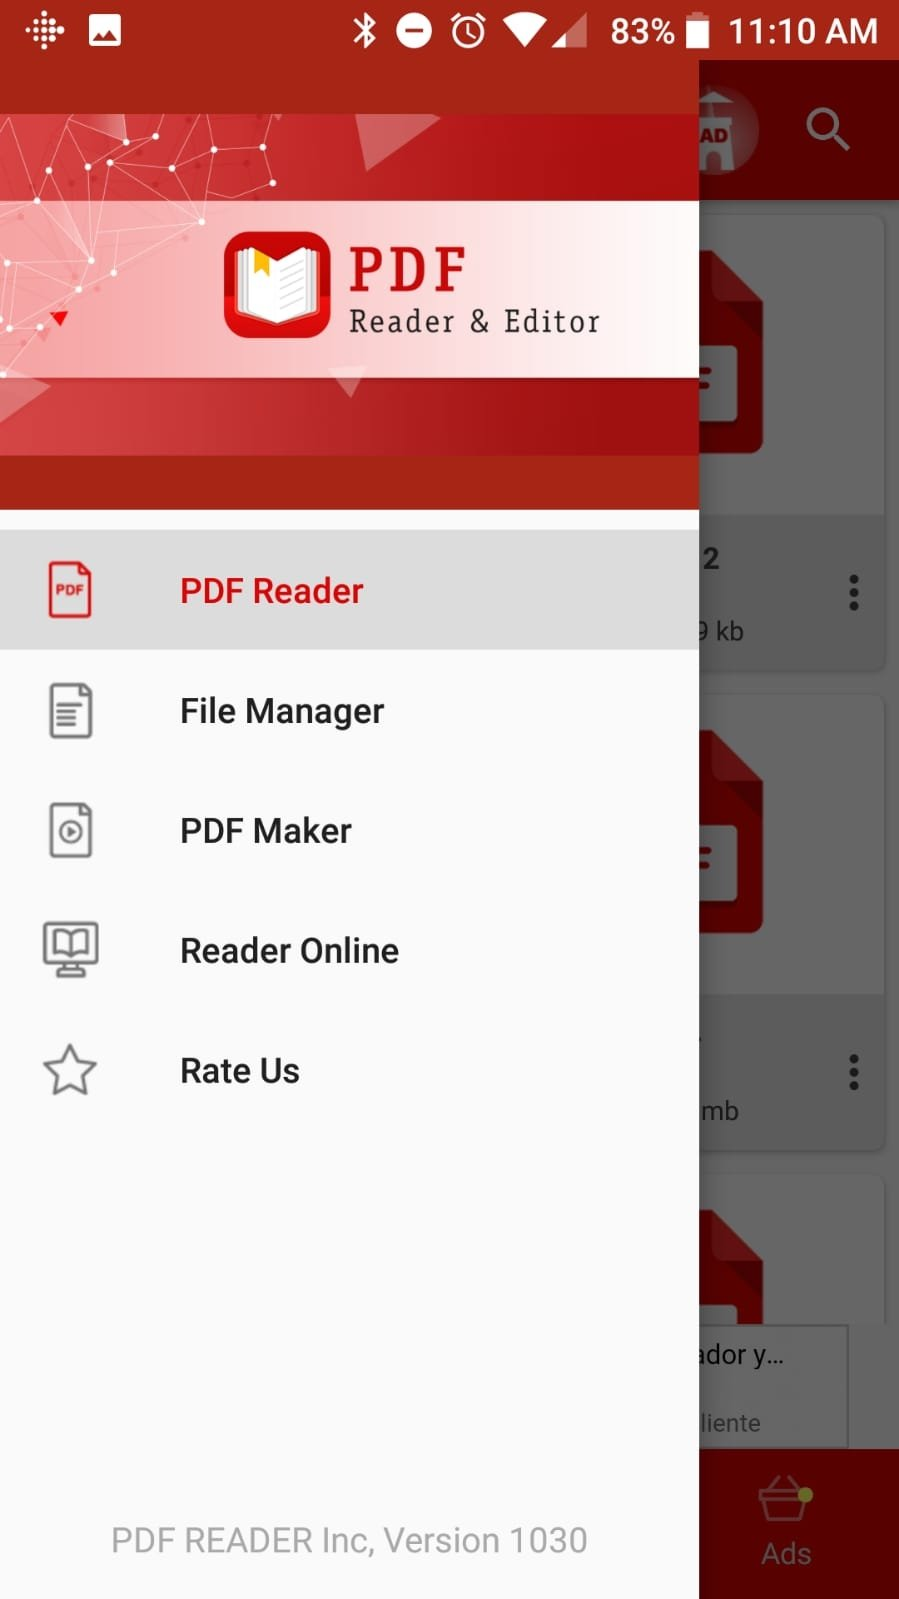 PDF Reader Android image 5